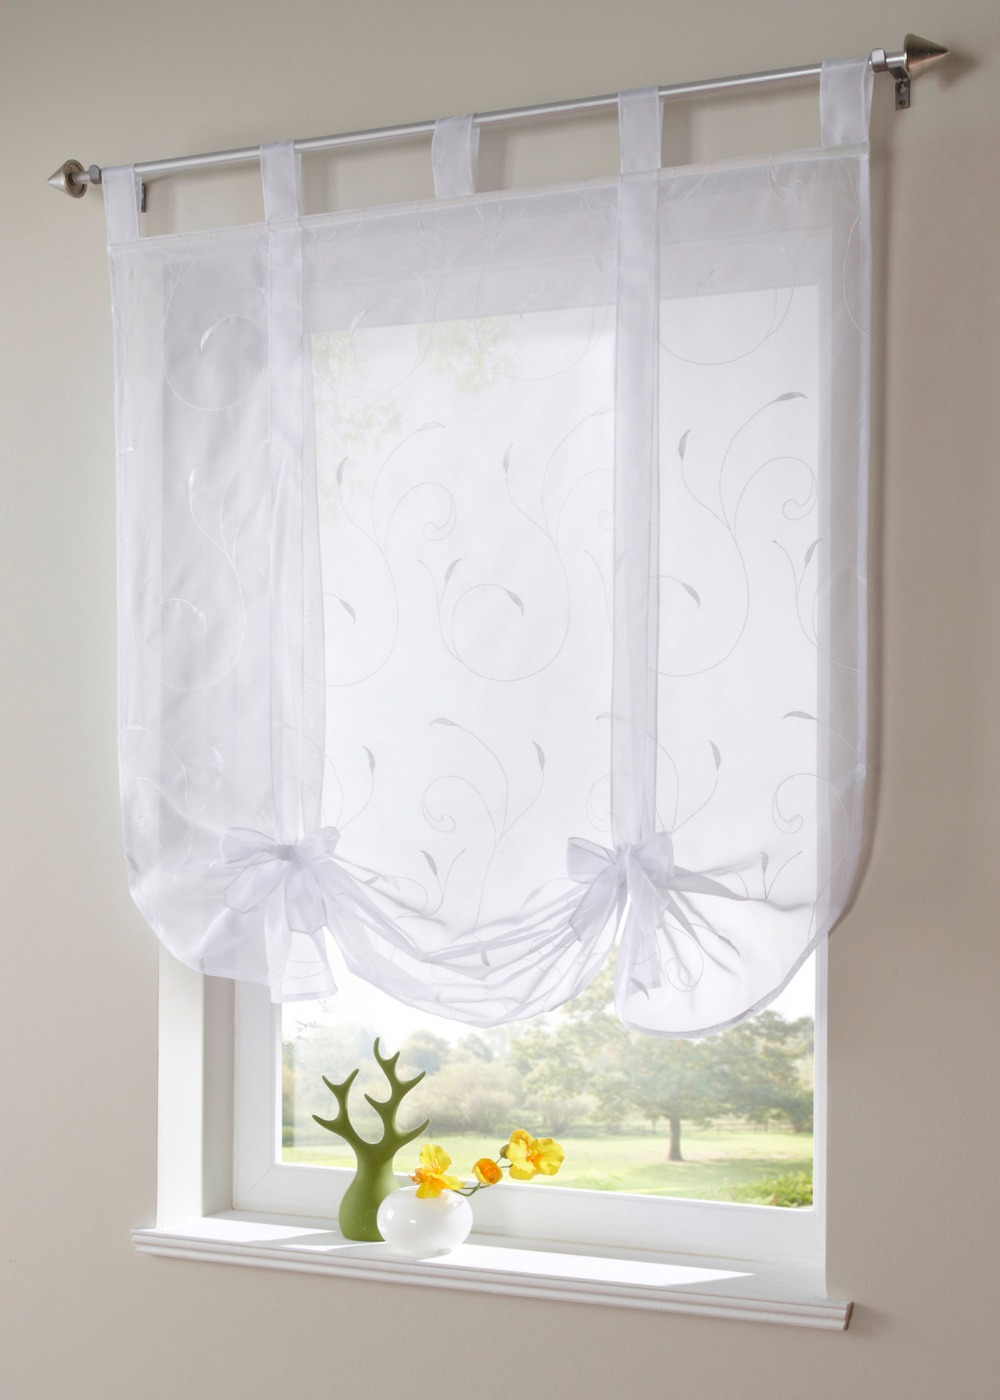 kitchensheer orte sheer kitchen living room withing wonderful ideas pictures for curtain cafe dining roomsheer curtains valances